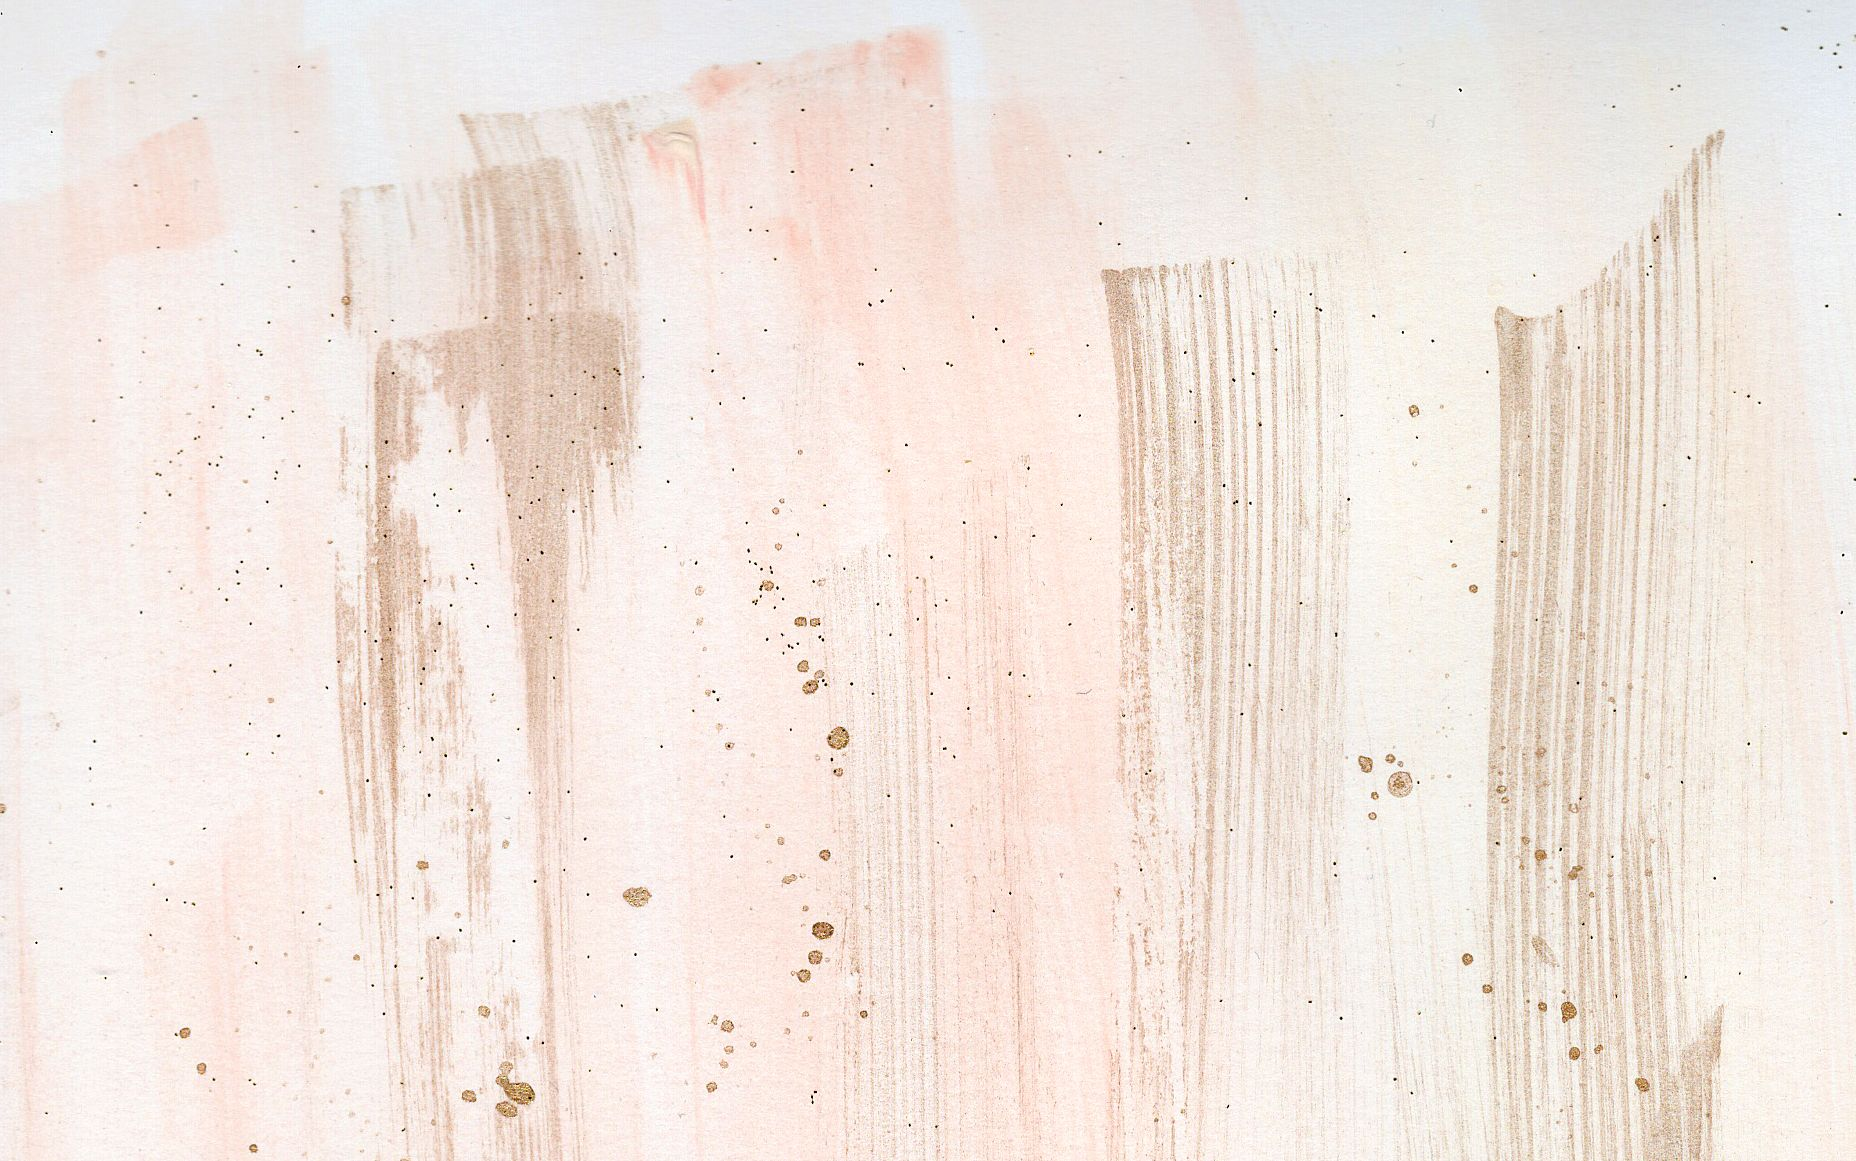 Watercolour Coral Blush Gold Brushstroke Desktop Wallpaper Background